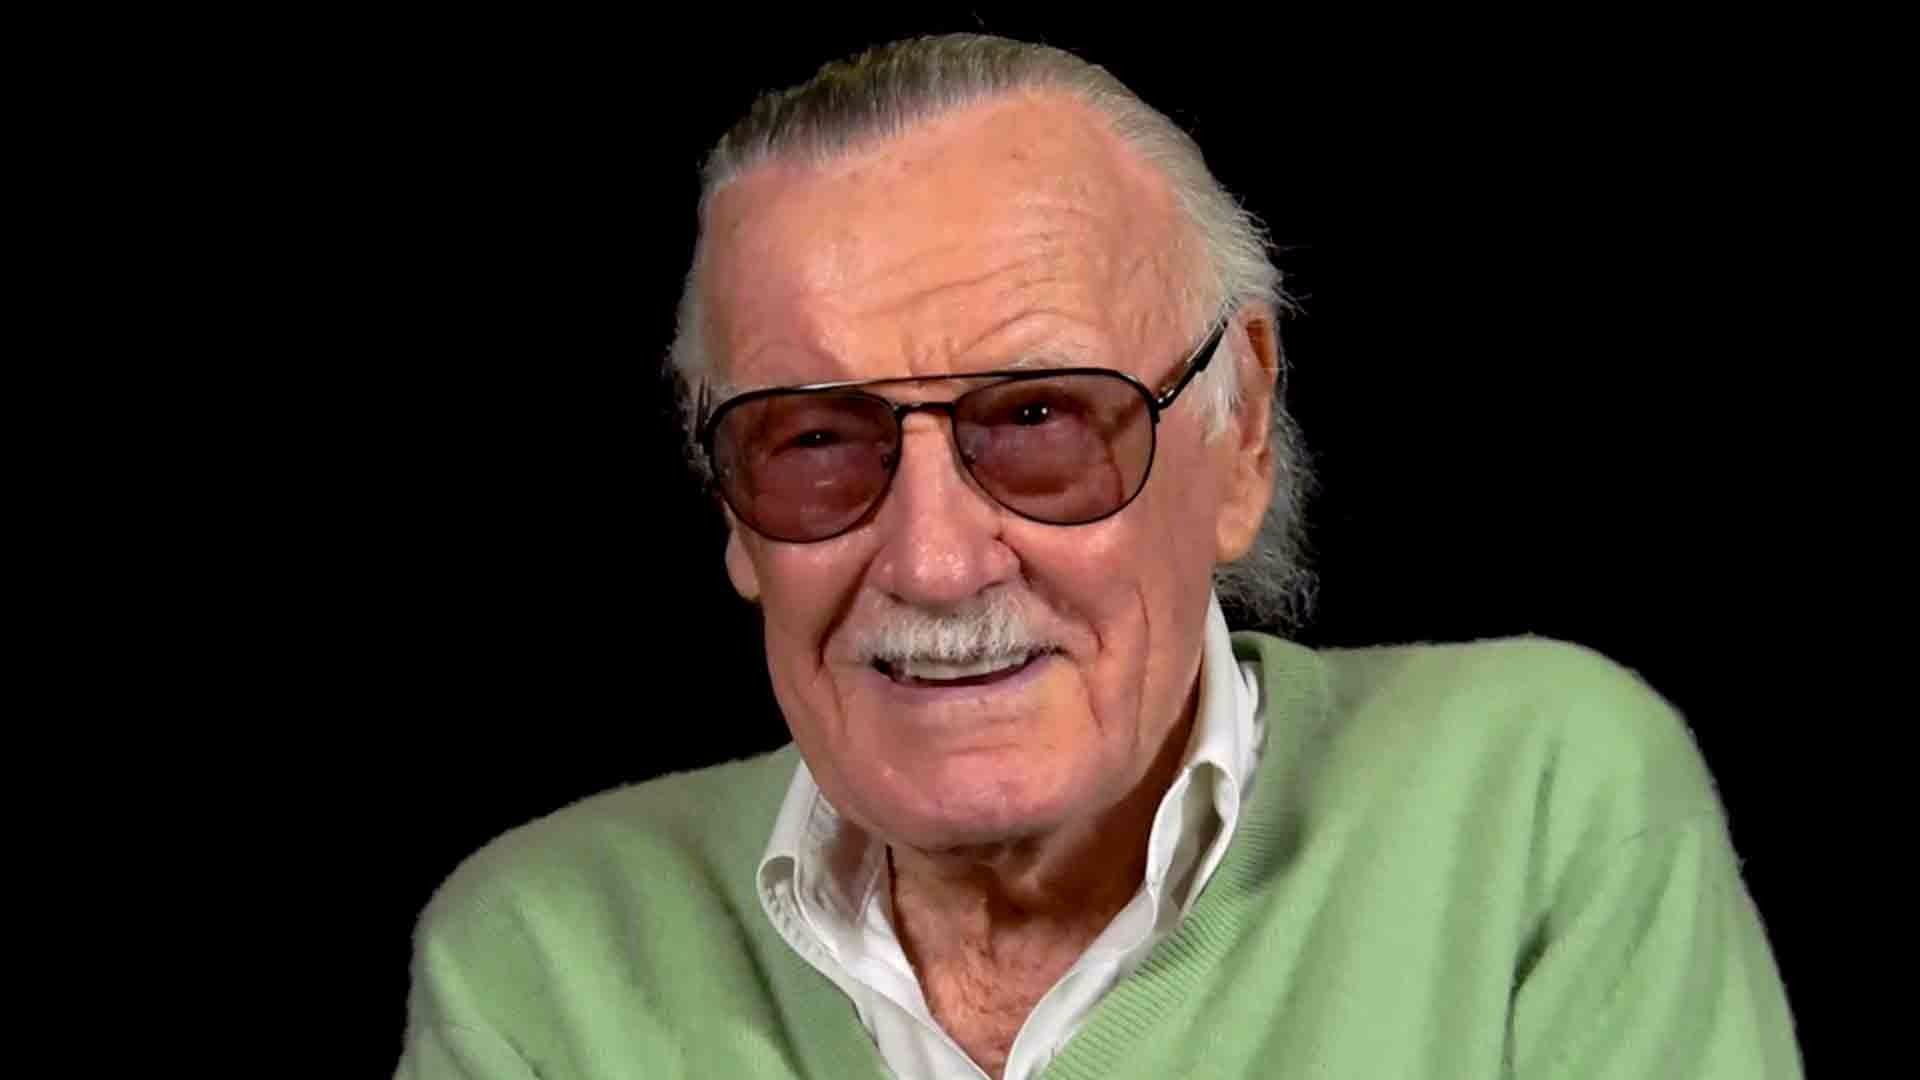 Super Secrets with Stan Lee